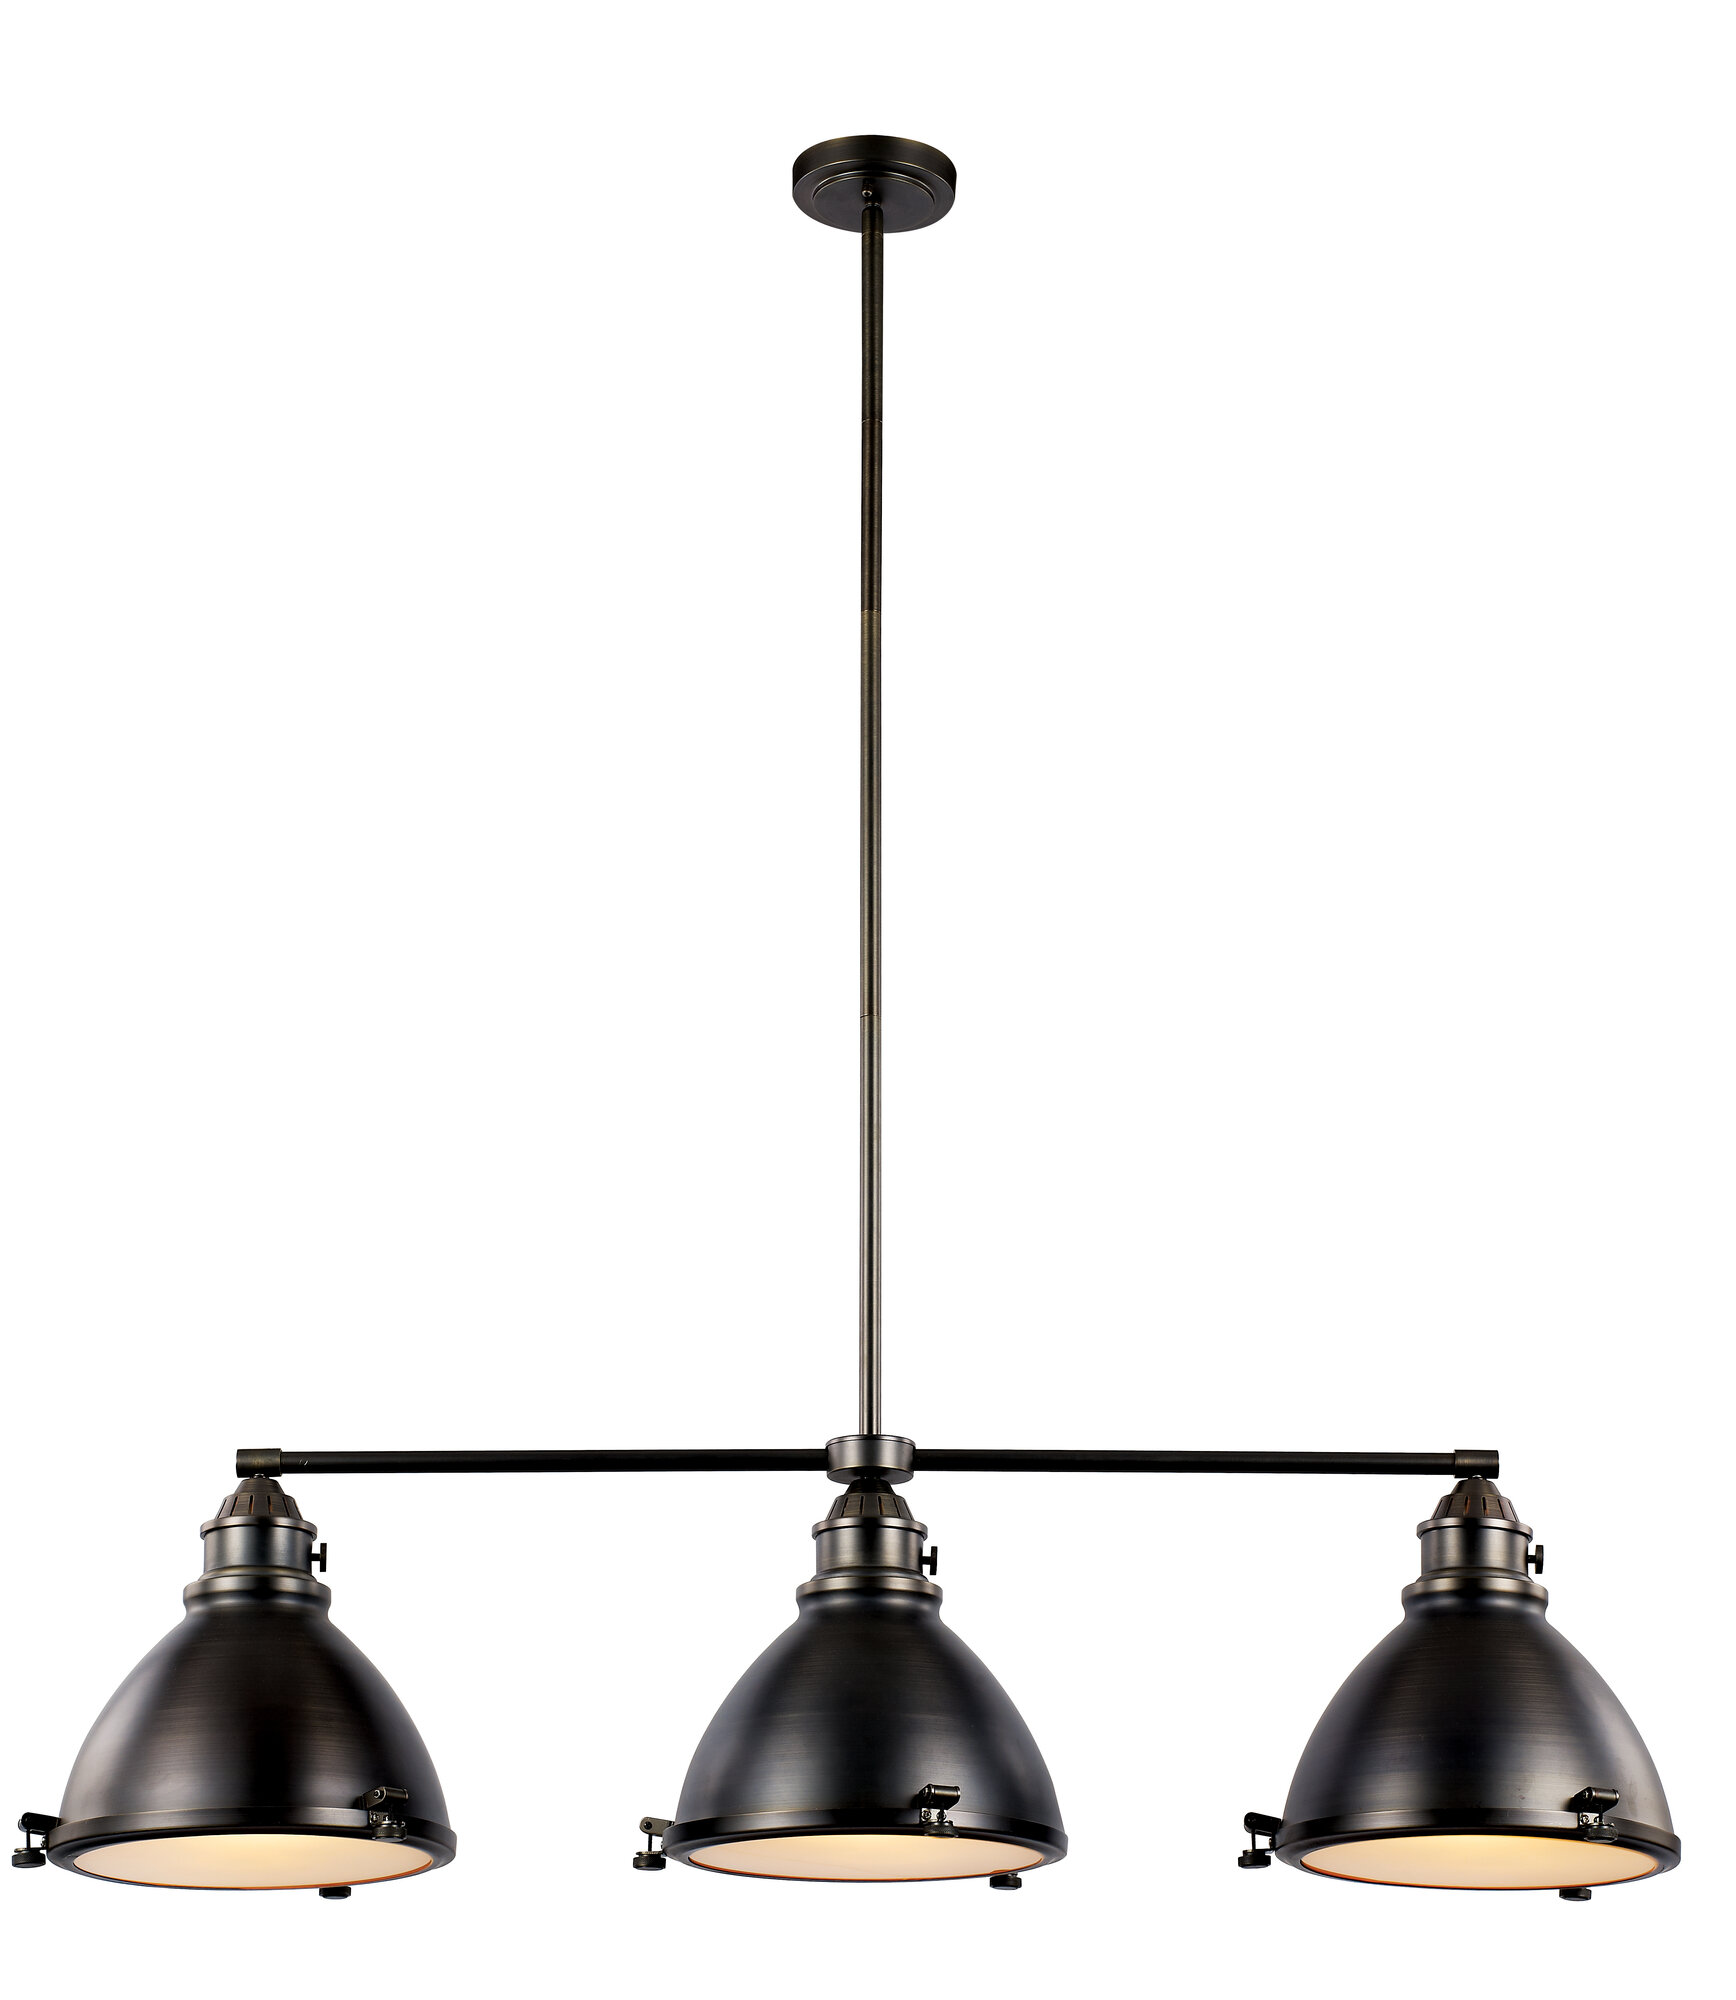 Transglobe lighting vintage 3 light kitchen island pendant for Kitchen pendant lighting island